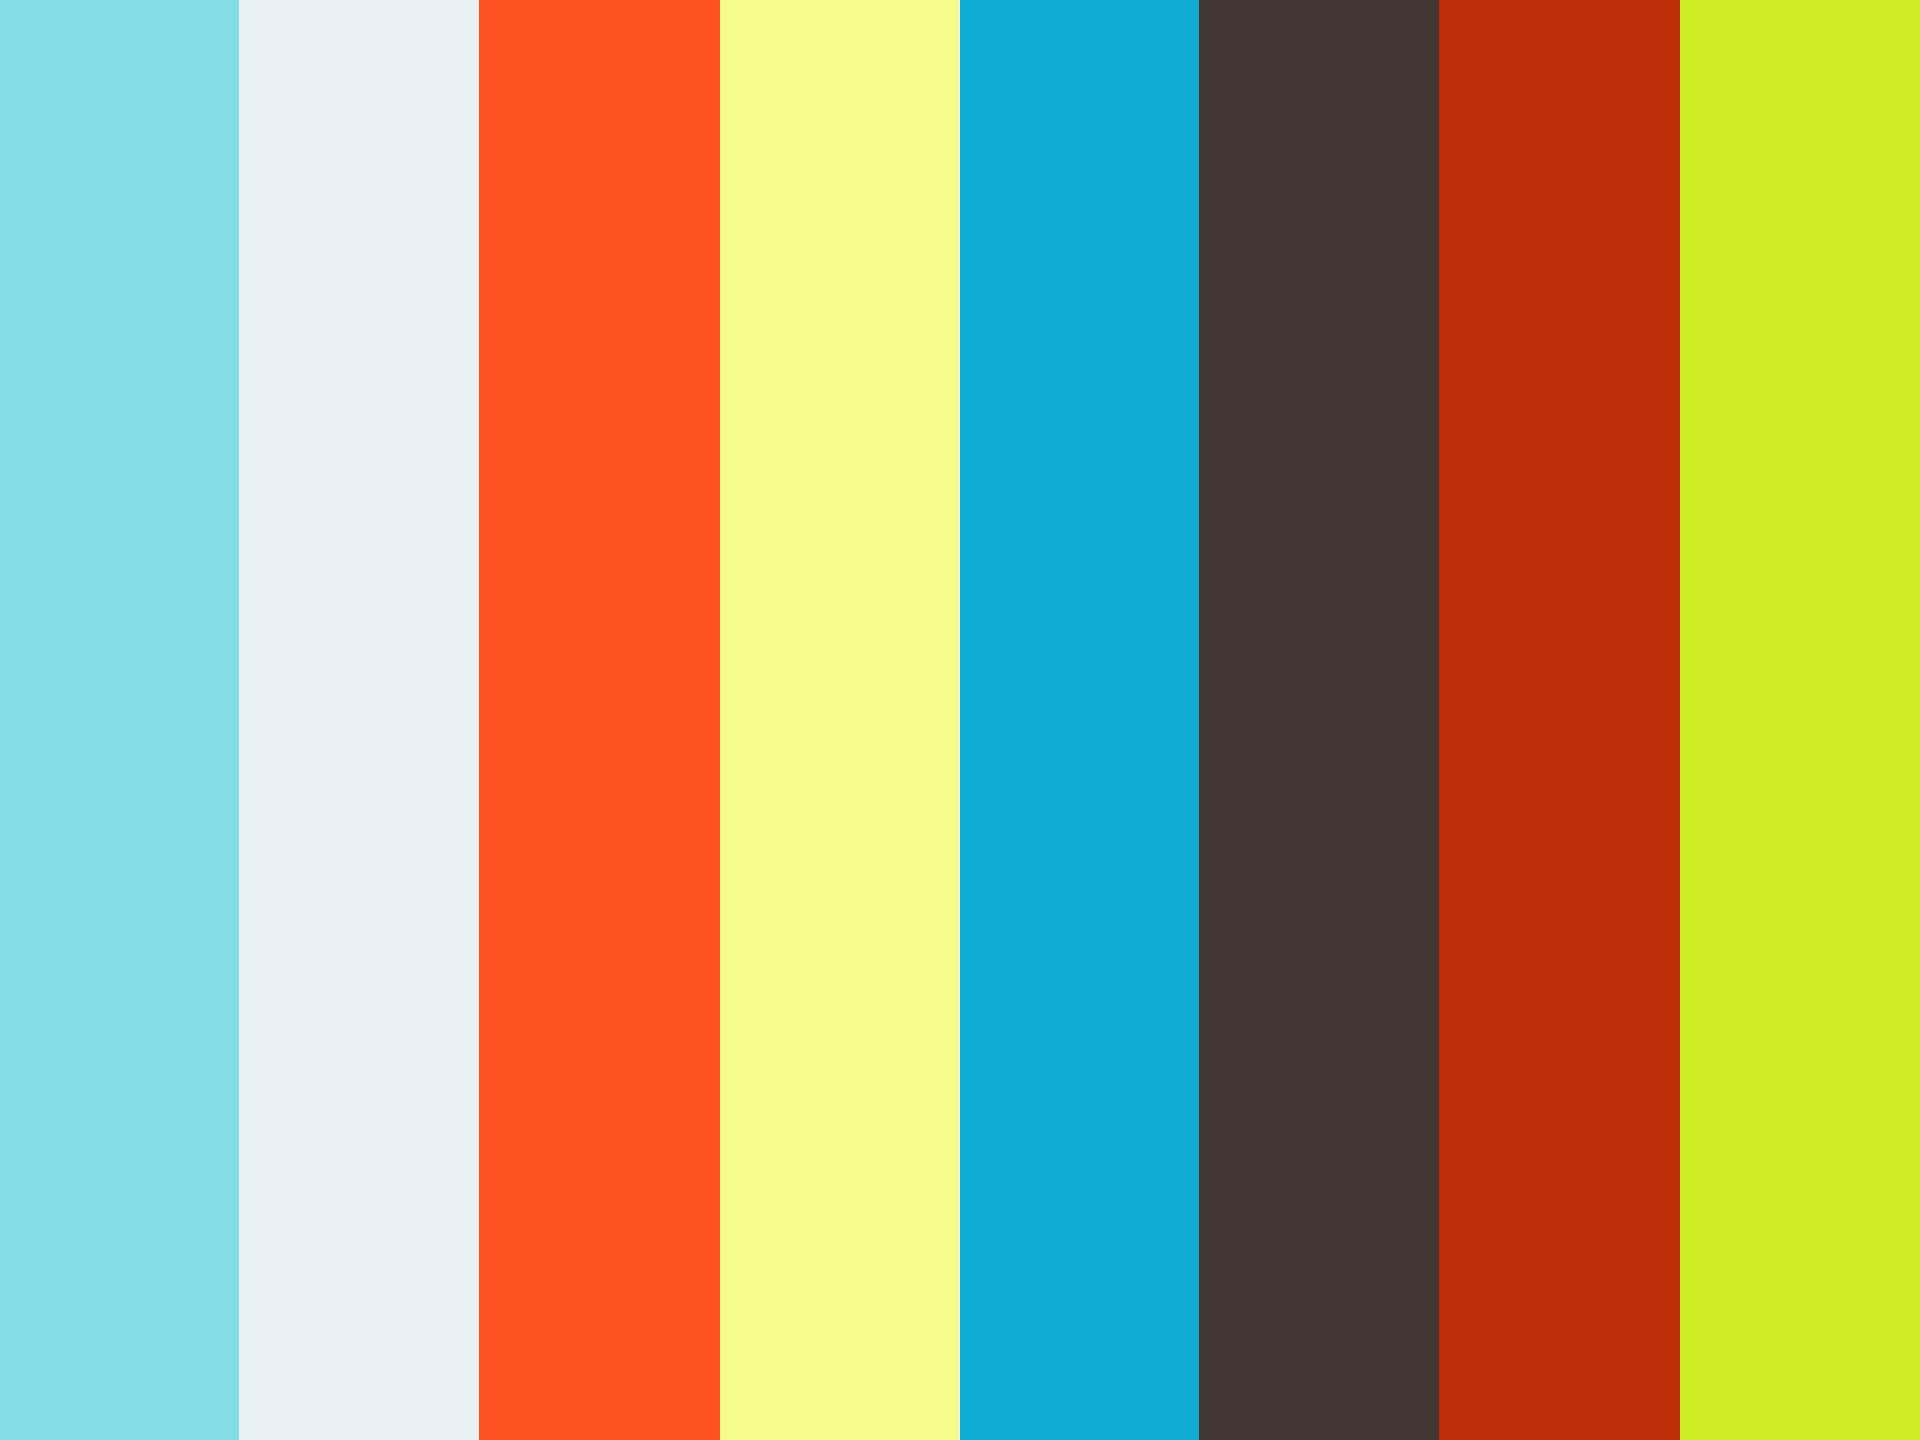 Resume Creation spong resume resume templates online resume builder resume creation The Best The Resume Creation Service Hd On Vimeo